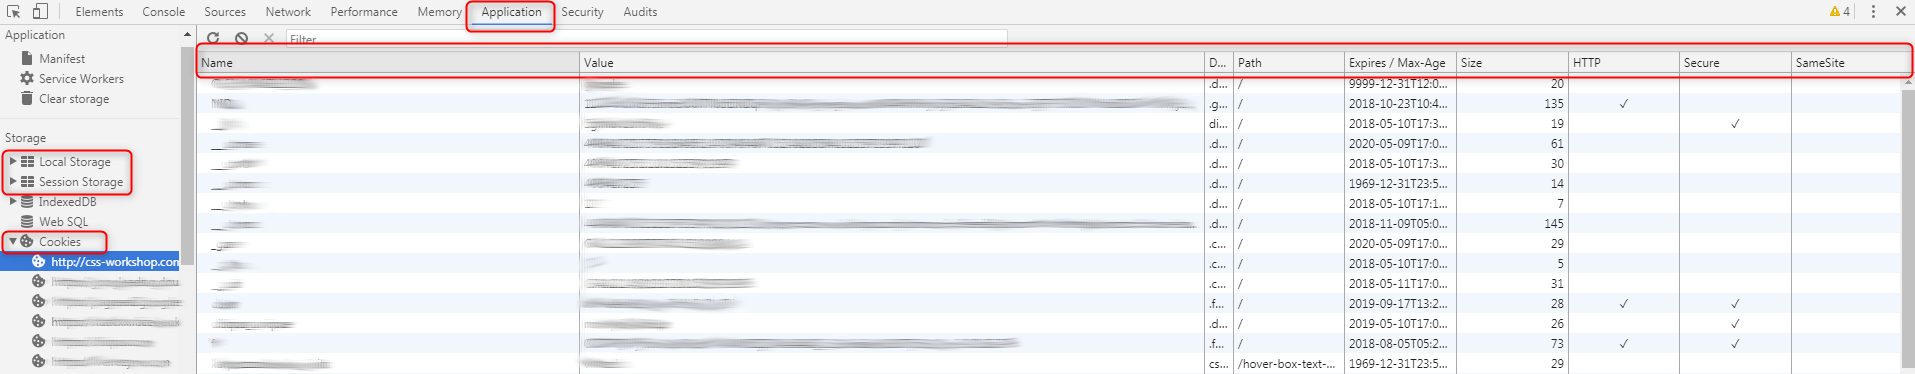 Check cookies, local and session storage in IE11, Edge